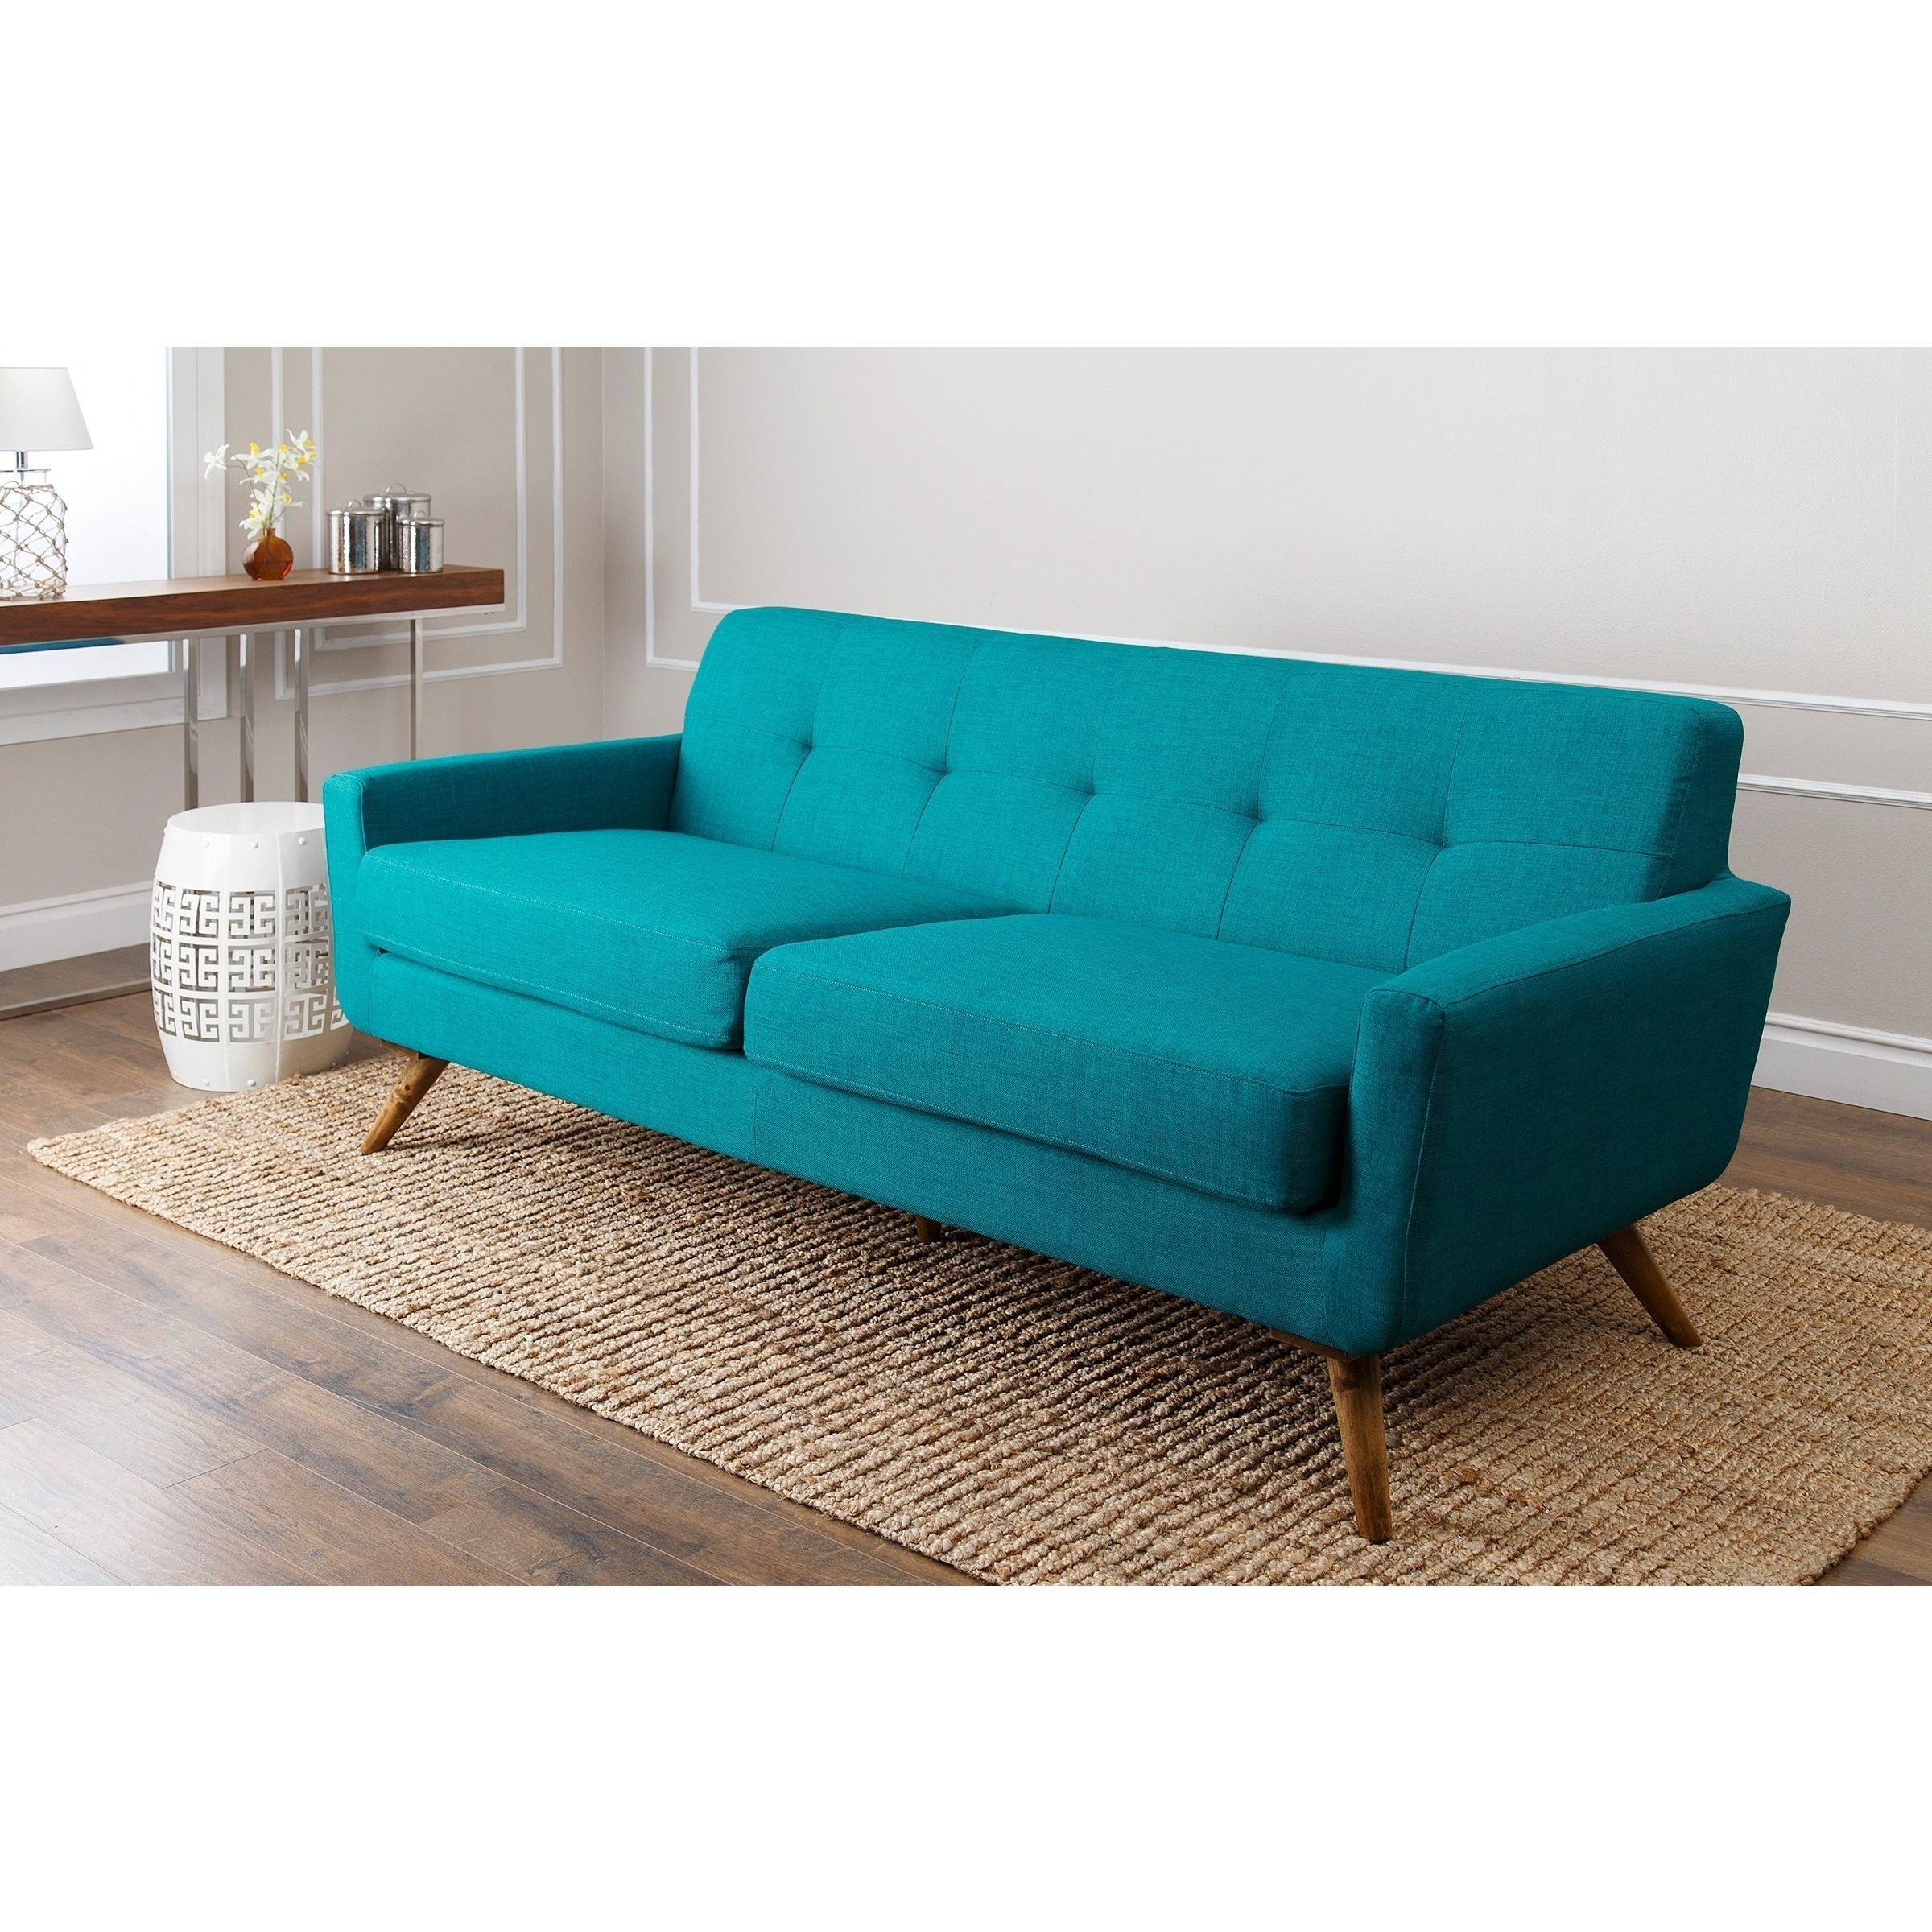 Popular Update Your Home With Modern Style Thanks To This Petrol Blue Sofa Pertaining To Turquoise Sofas (View 18 of 20)